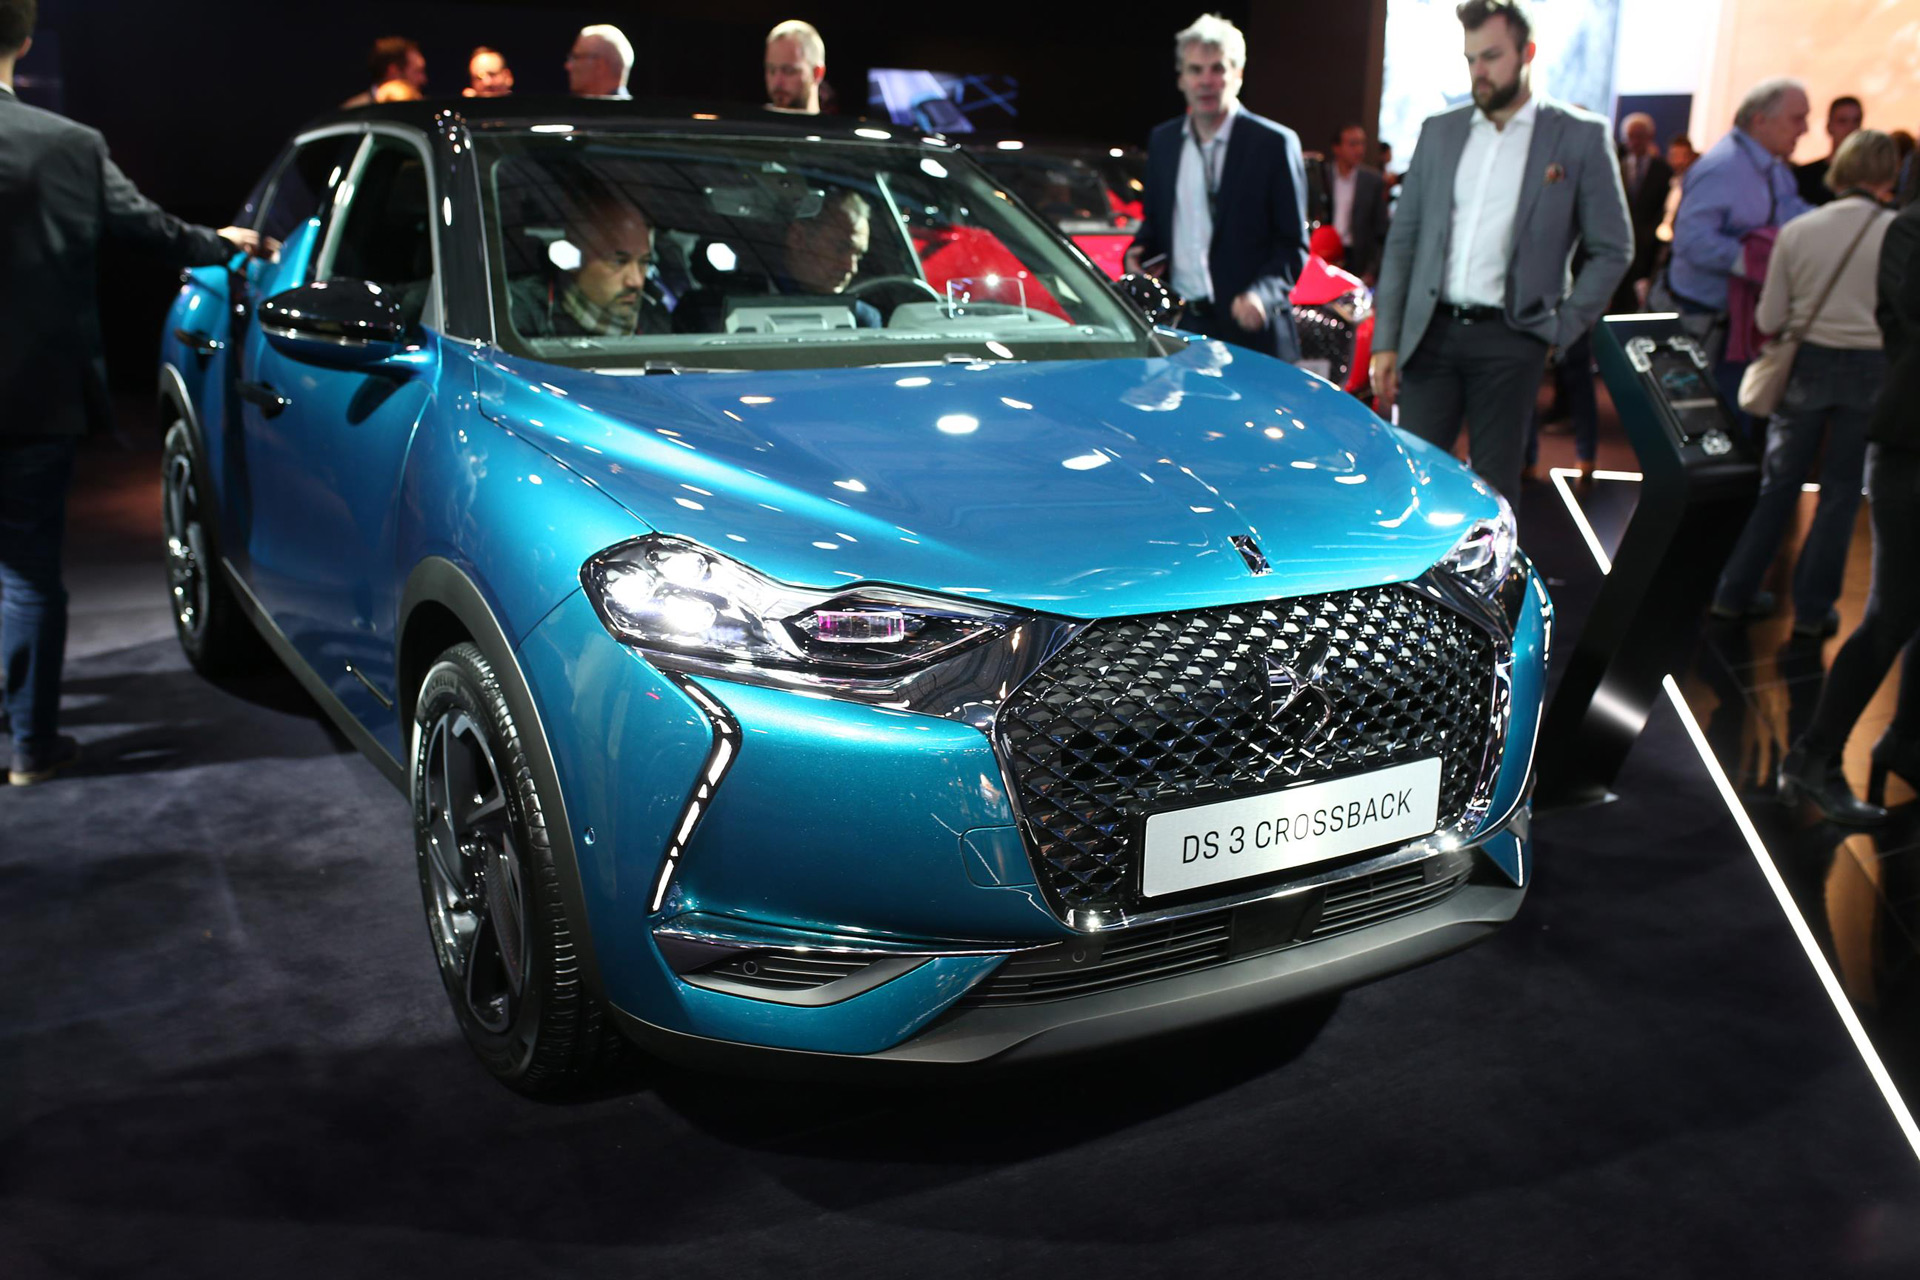 2019 ds 3 crossback french luxury crossover debuts with ev option. Black Bedroom Furniture Sets. Home Design Ideas